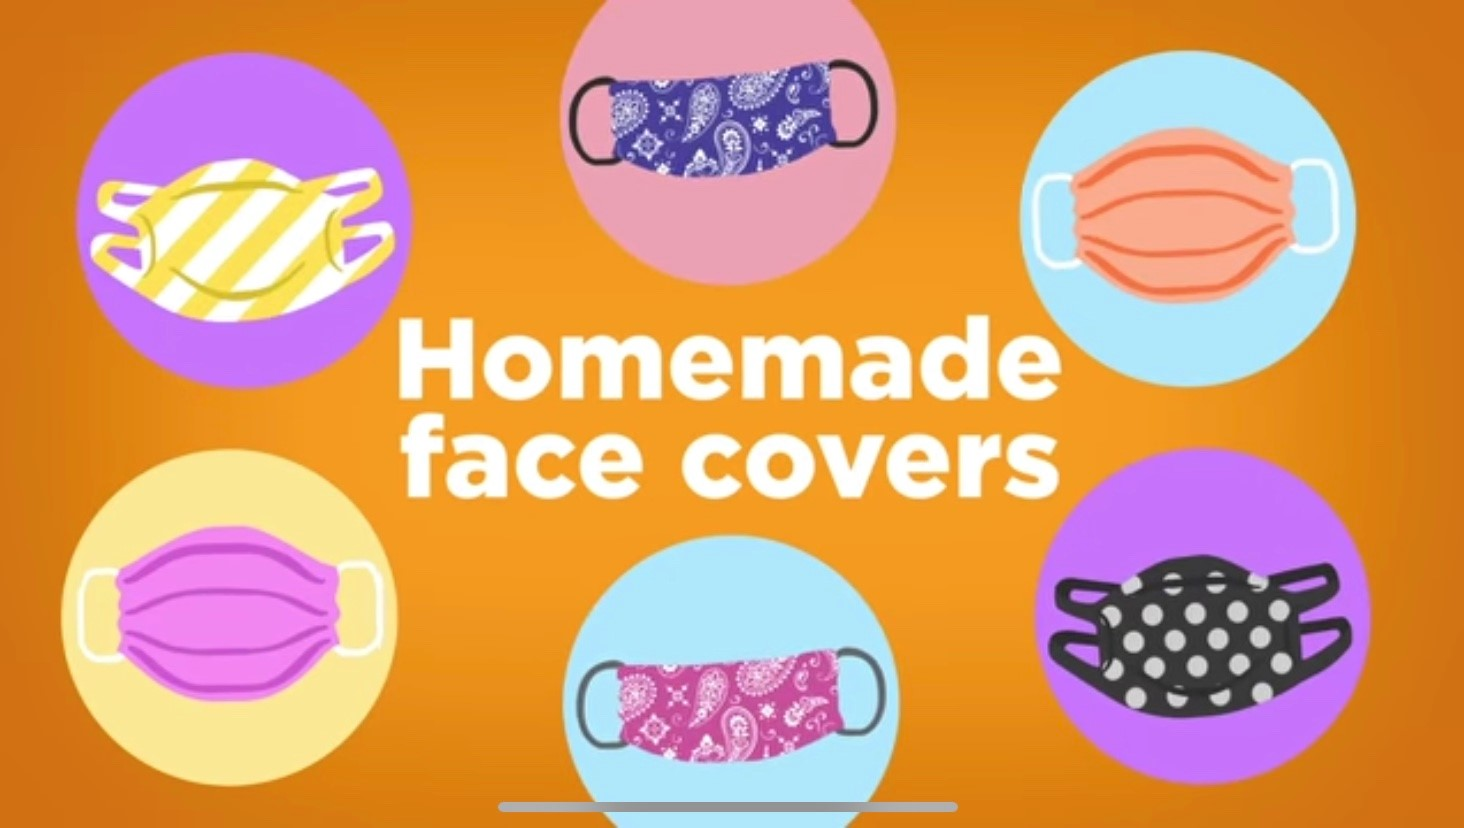 Homemade Face masks are worn over the nose and mouth and can be made with t-shirts and bandannas.